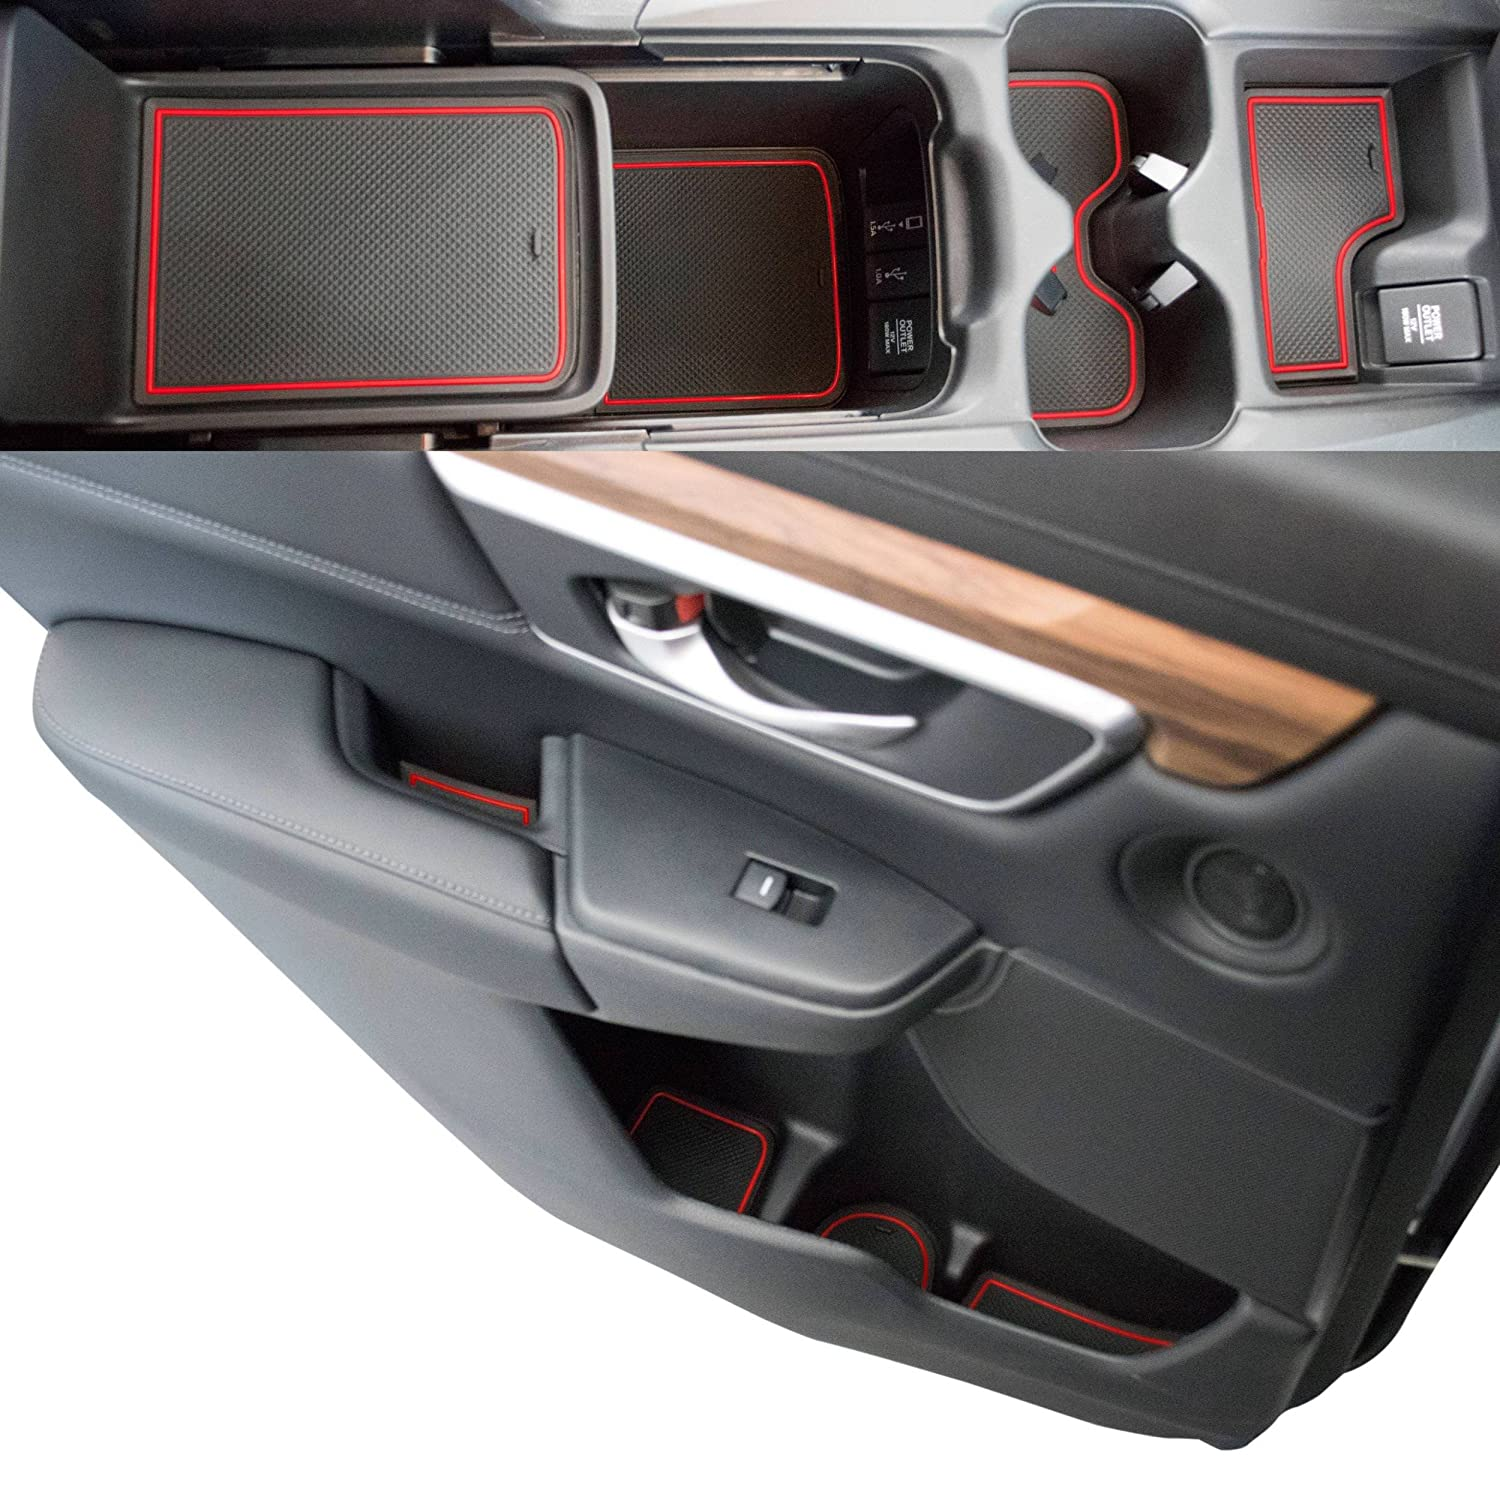 Custom Fit Cup, Door, Console Liner Accessories 2019 2018 2017 Honda CR-V CRV (Red Trim) CupHolderHero